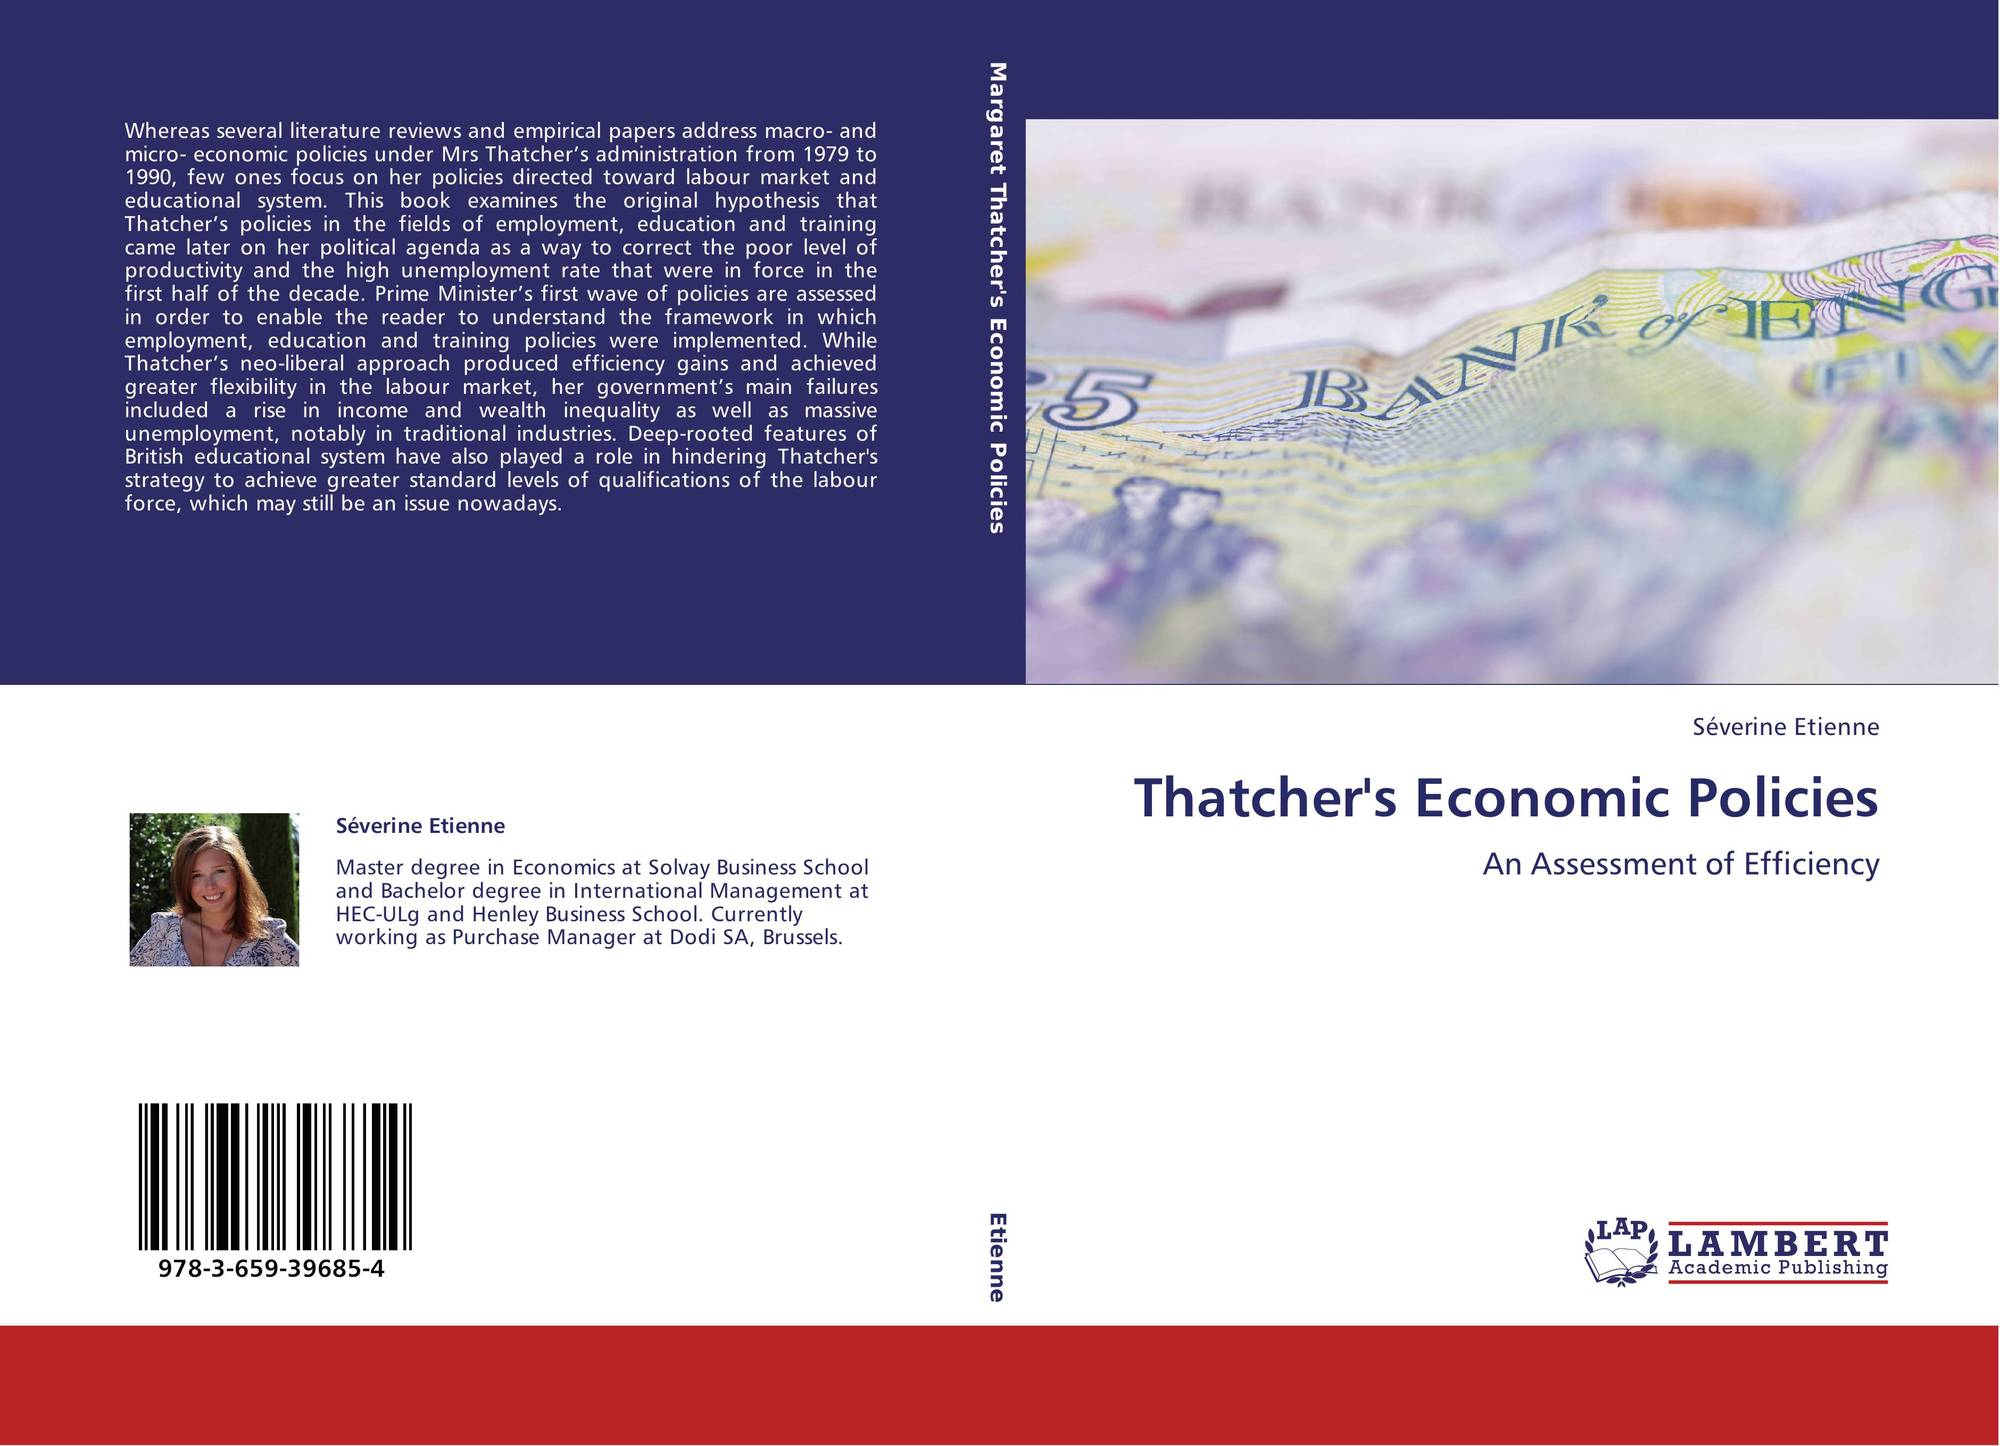 an assessment of the economic way An economic way of thinking- assesment  he introduced a way of thinking about economic ideas which of these statements is an example of normative economics taxes ought to be lowered which of these terms is most closely related to trade offs  economic decision making- assessment 20 terms economics -mastering the content chapter 3.